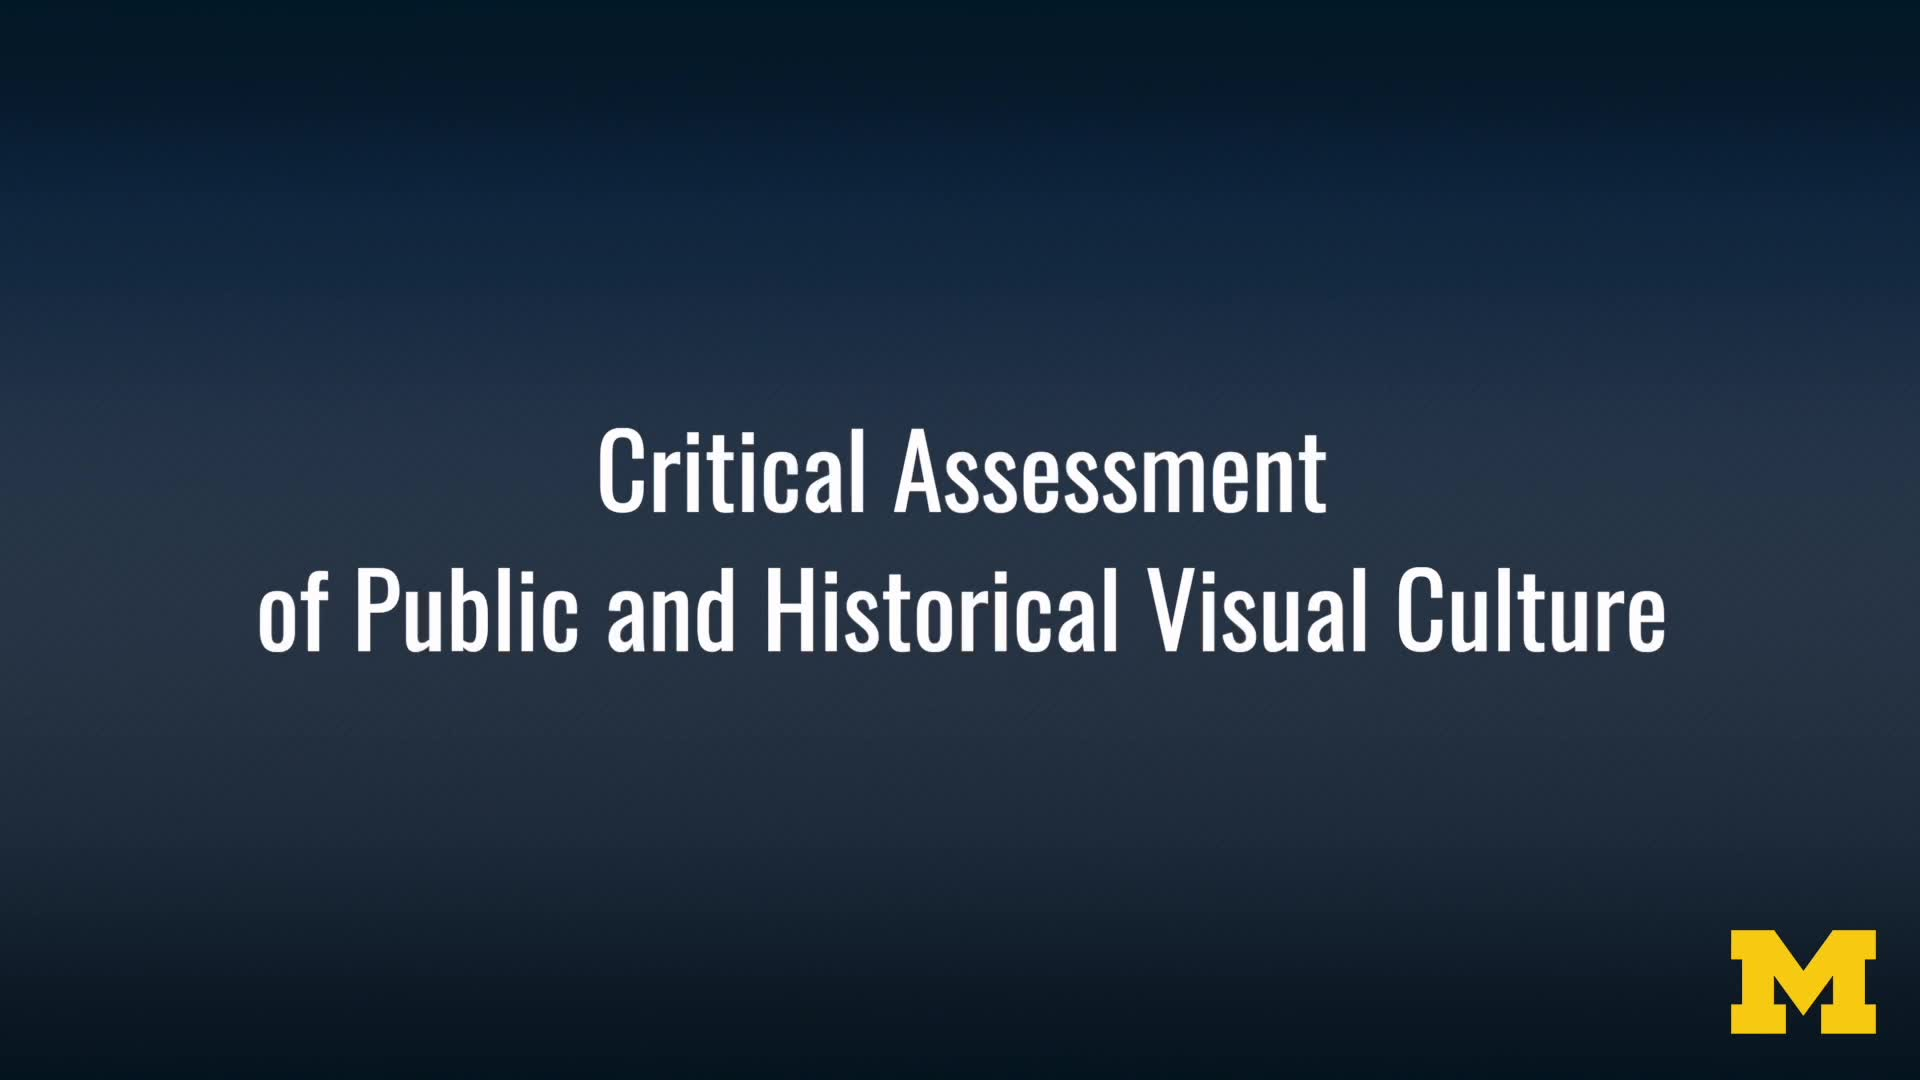 Critical Assessment of Public and Historical Visual Culture